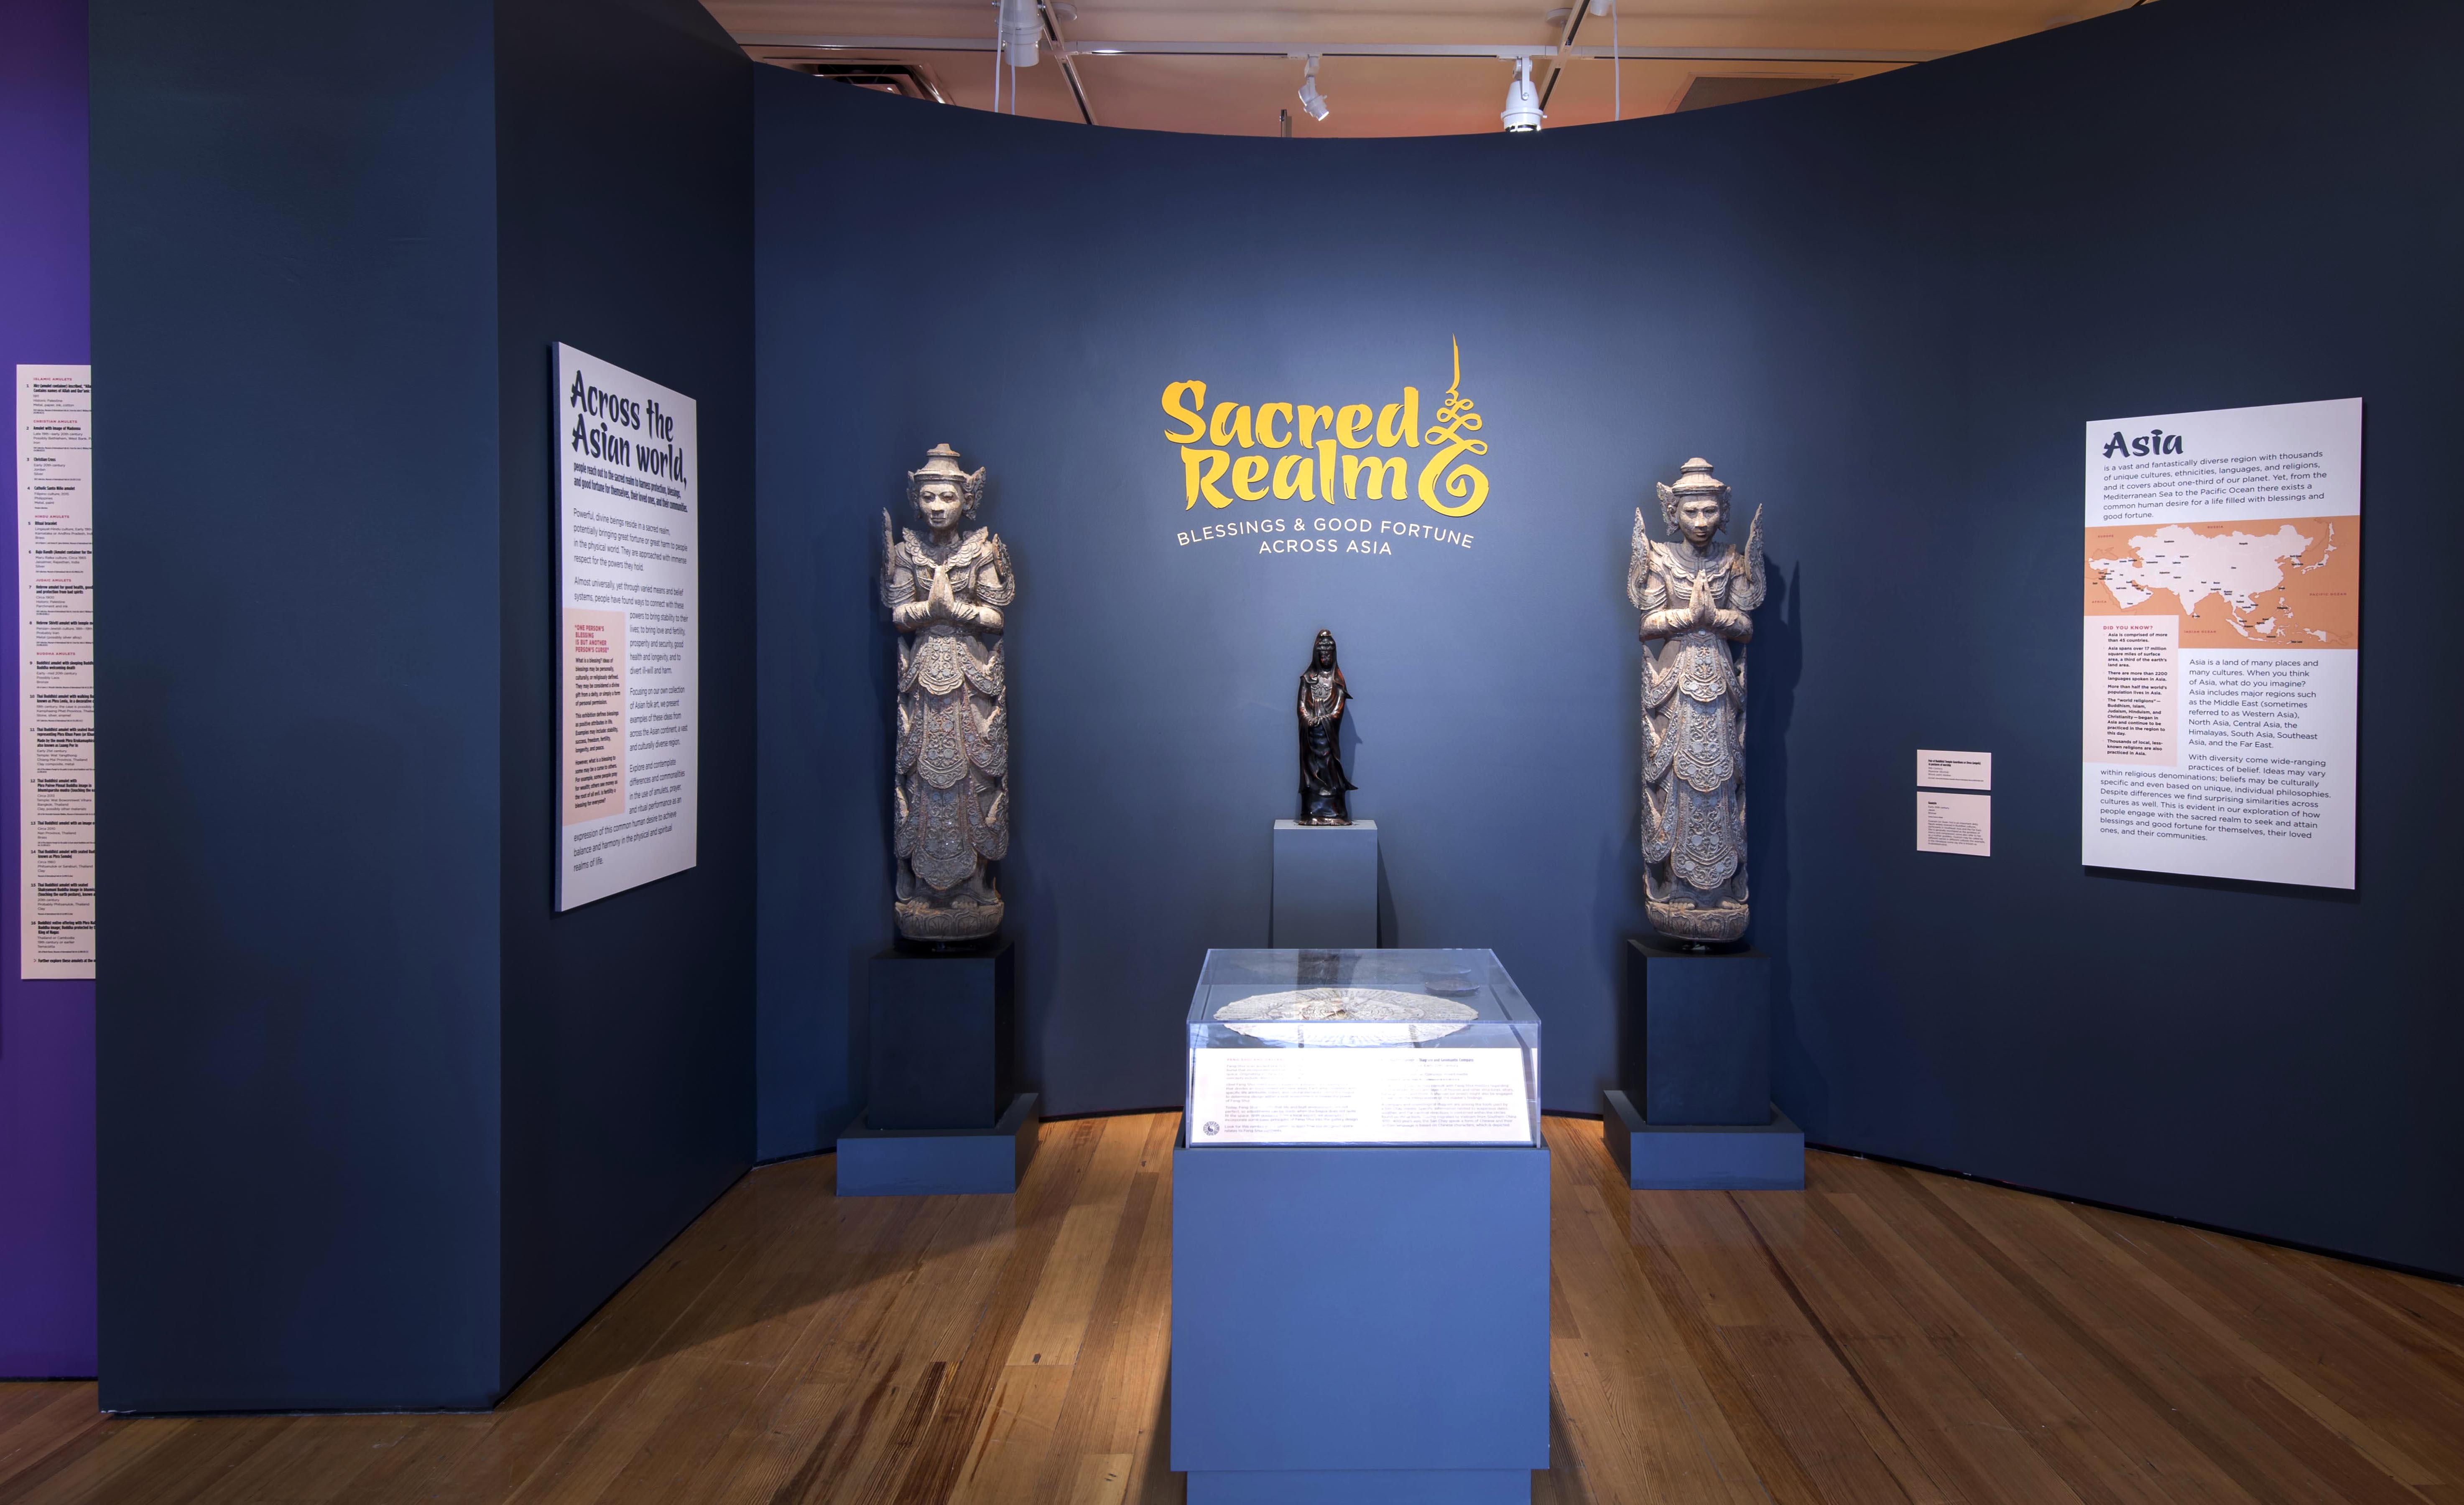 Entrance to the exhibition Sacred Realm: Blessings and Good Fortune across Asia